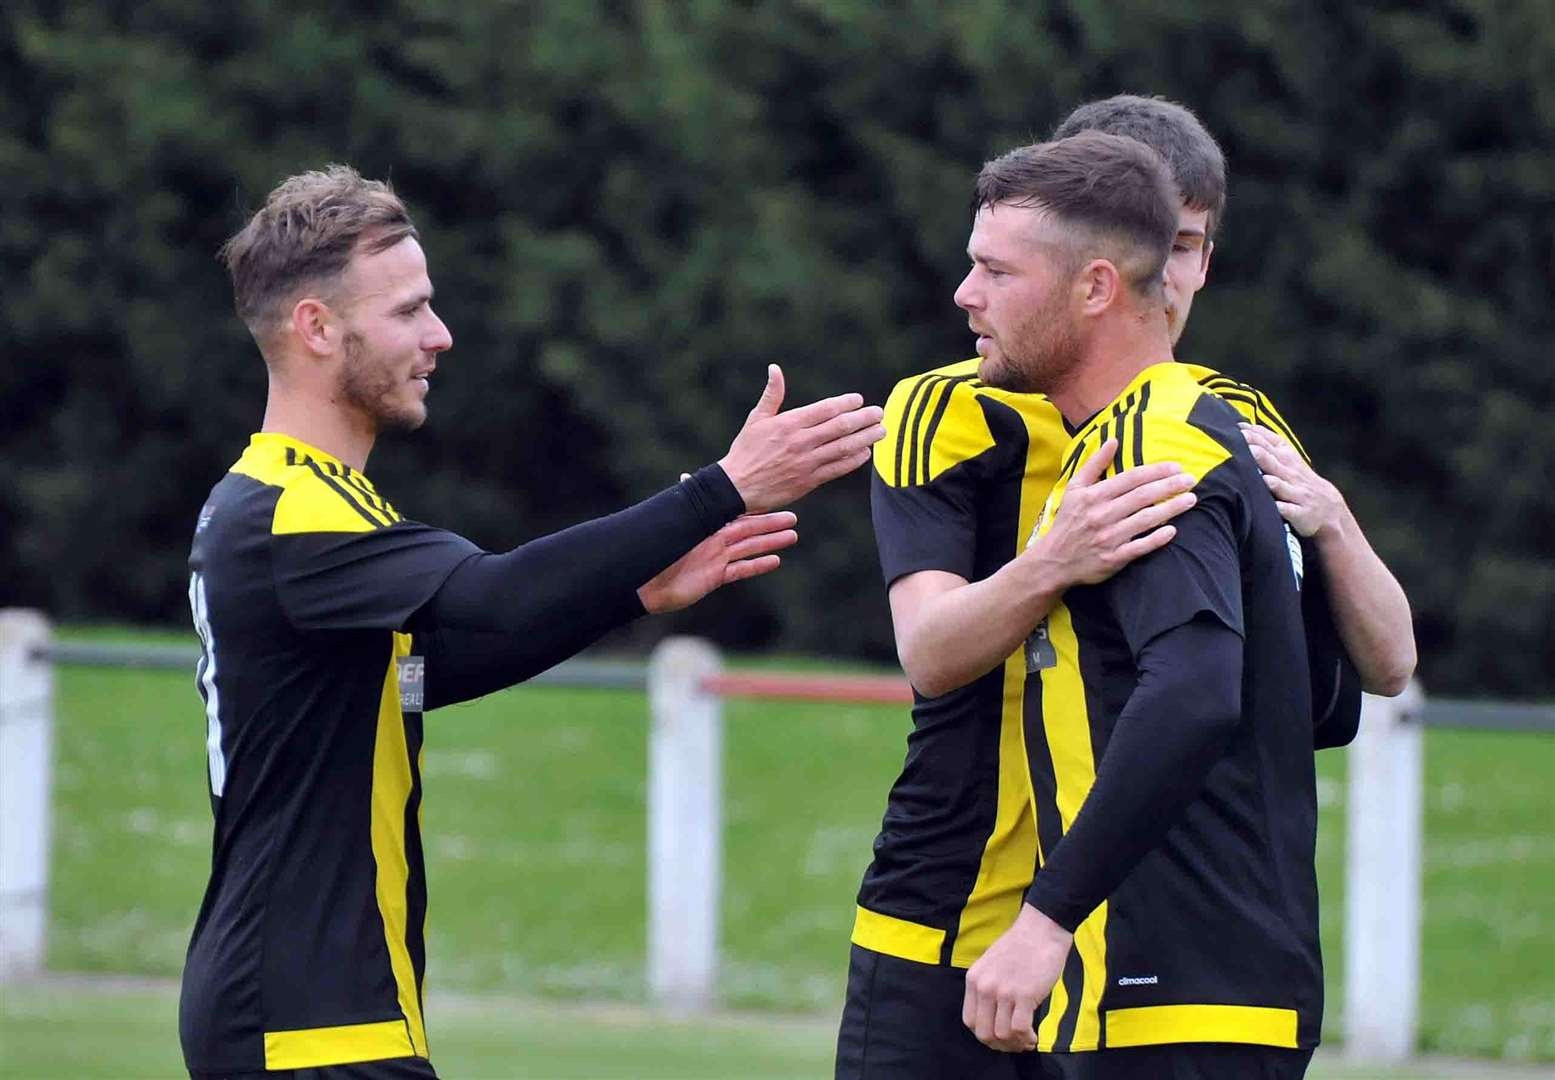 Holbeach celebrate their goal.